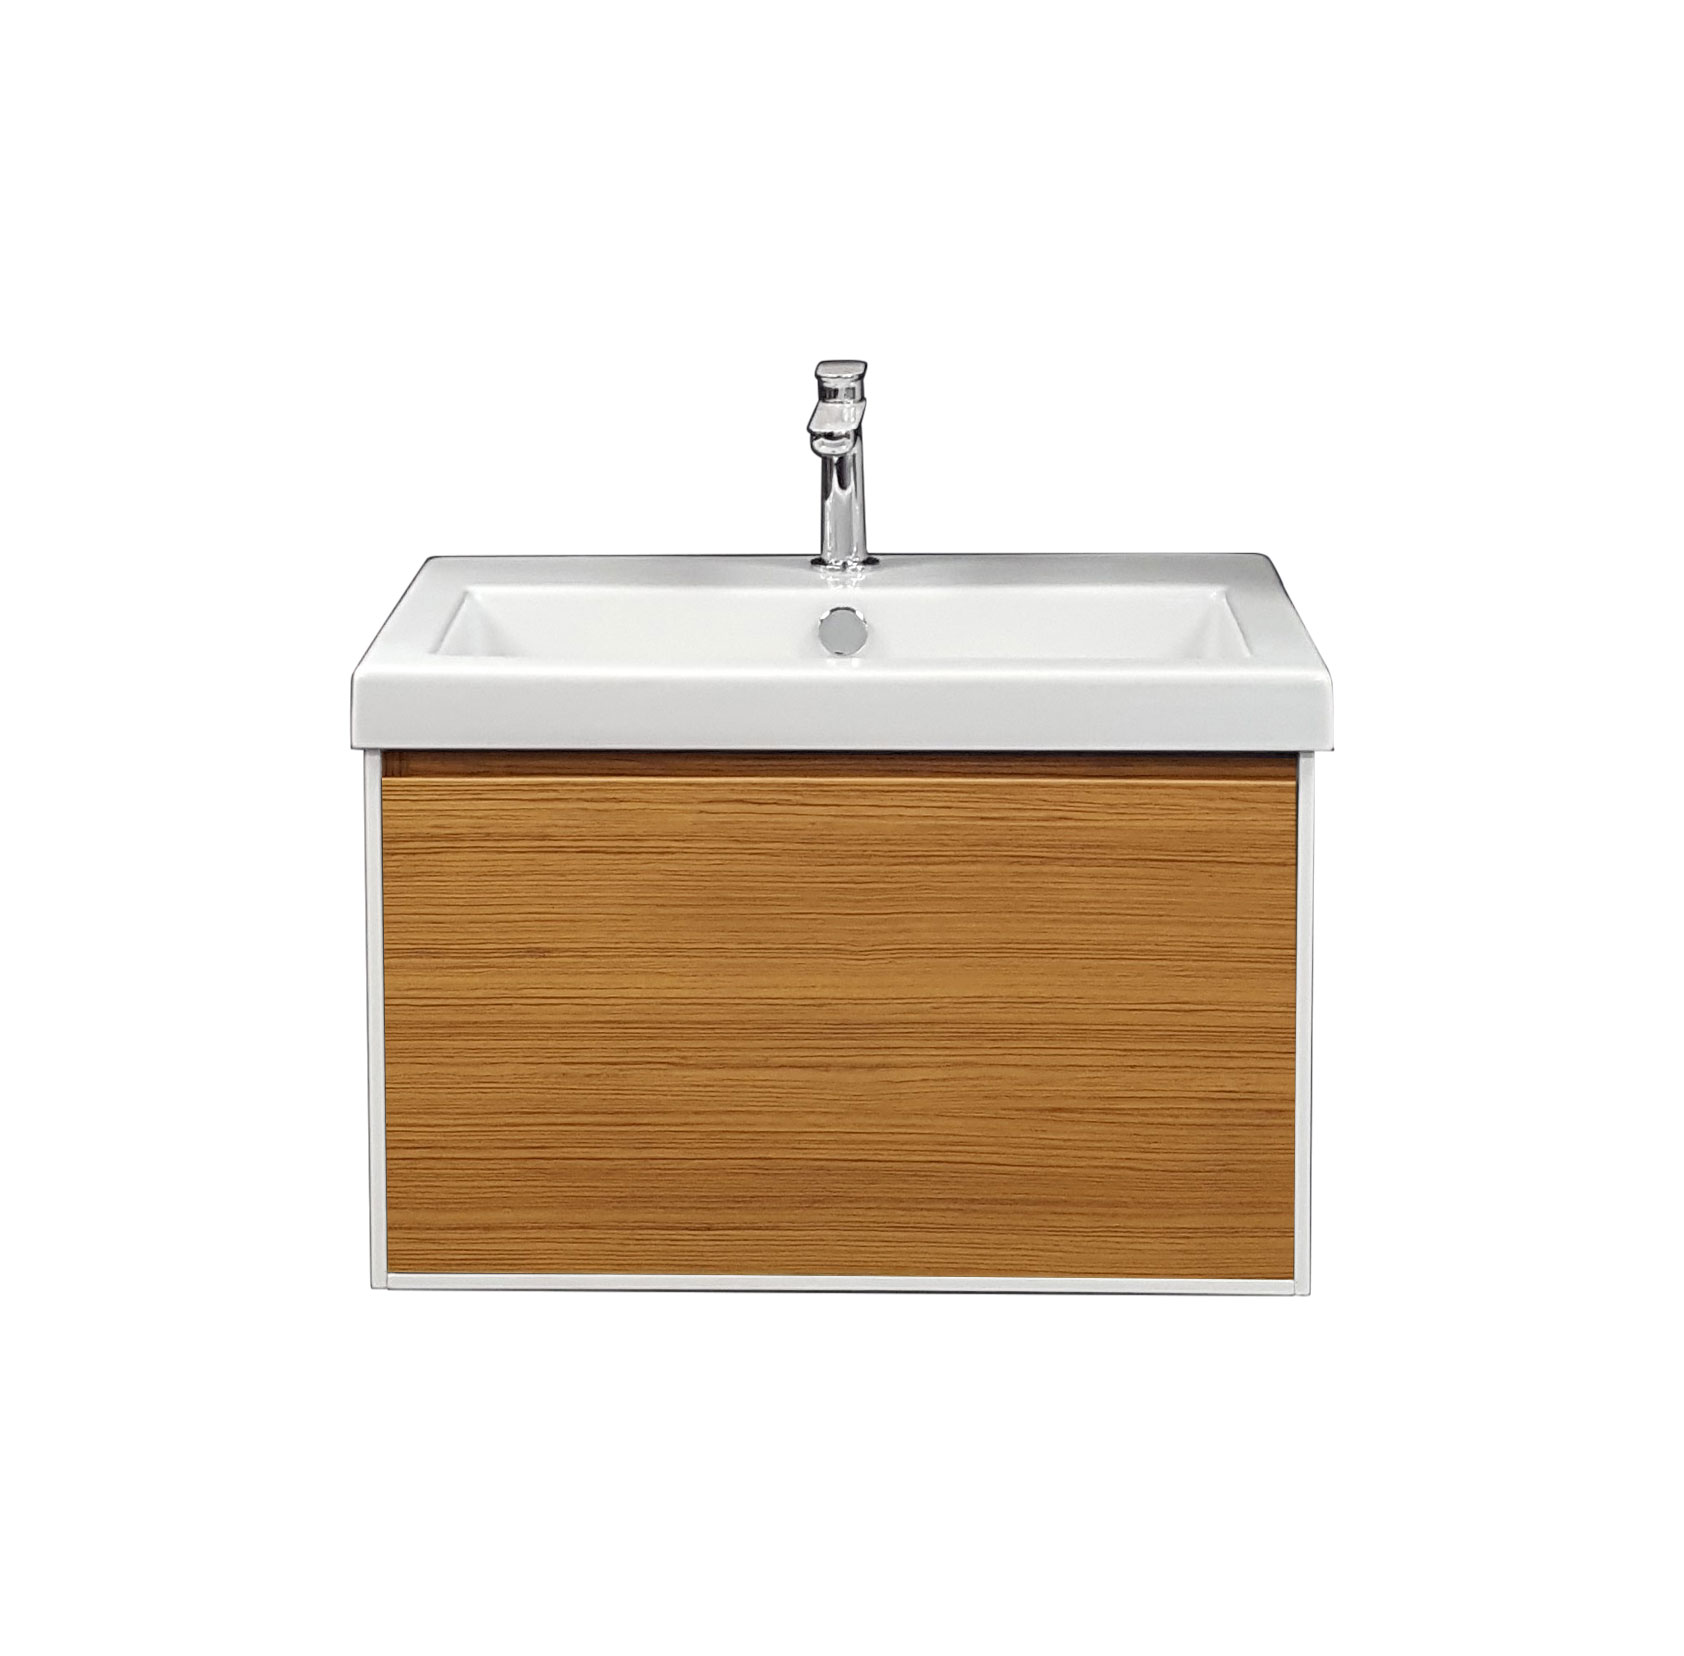 Blade 600 Wall Mounted Cabinet with Ceramic Top - Natural Teak ...